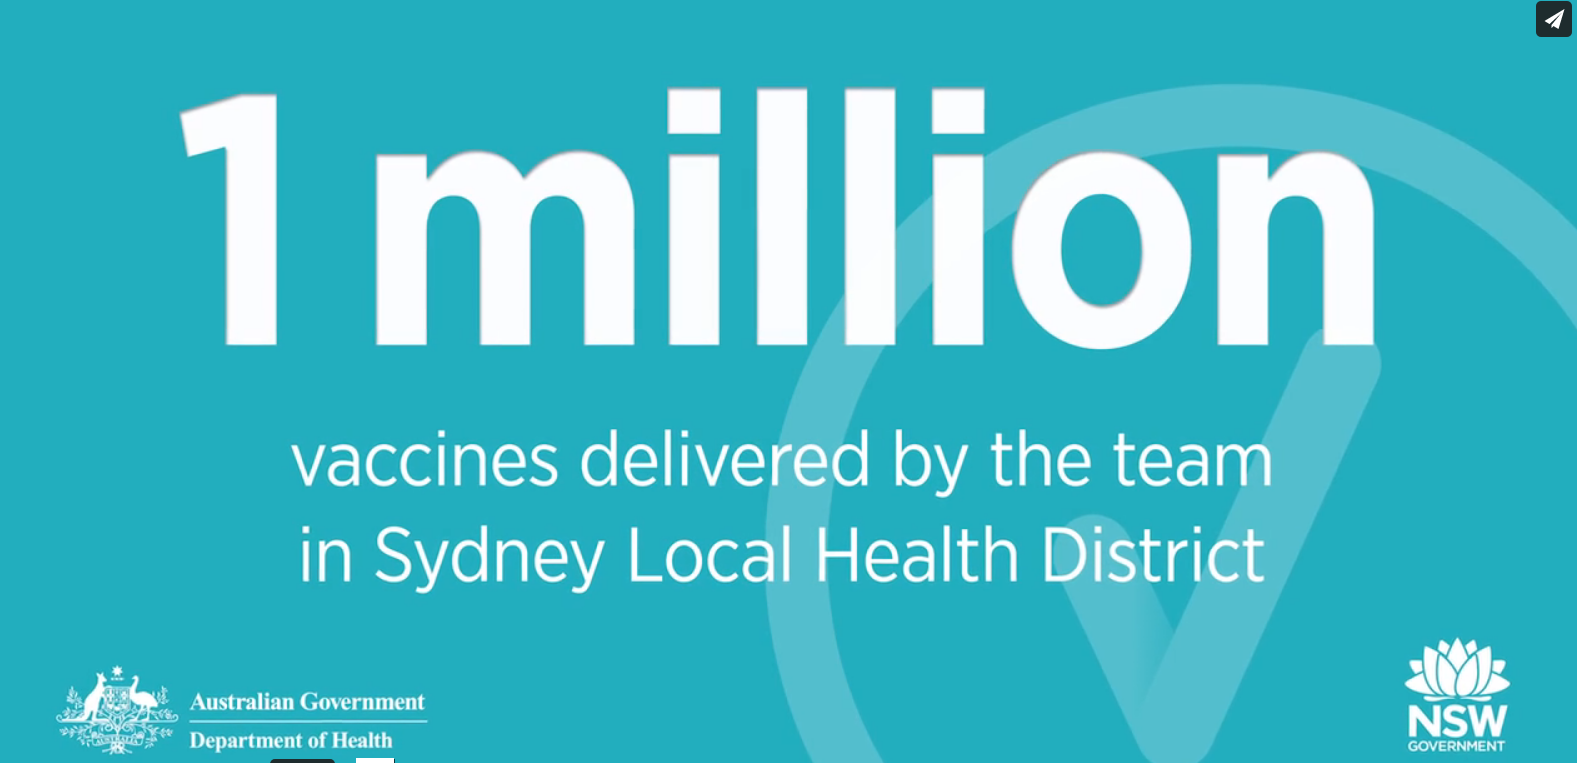 One million vaccines in Sydney Local Health District